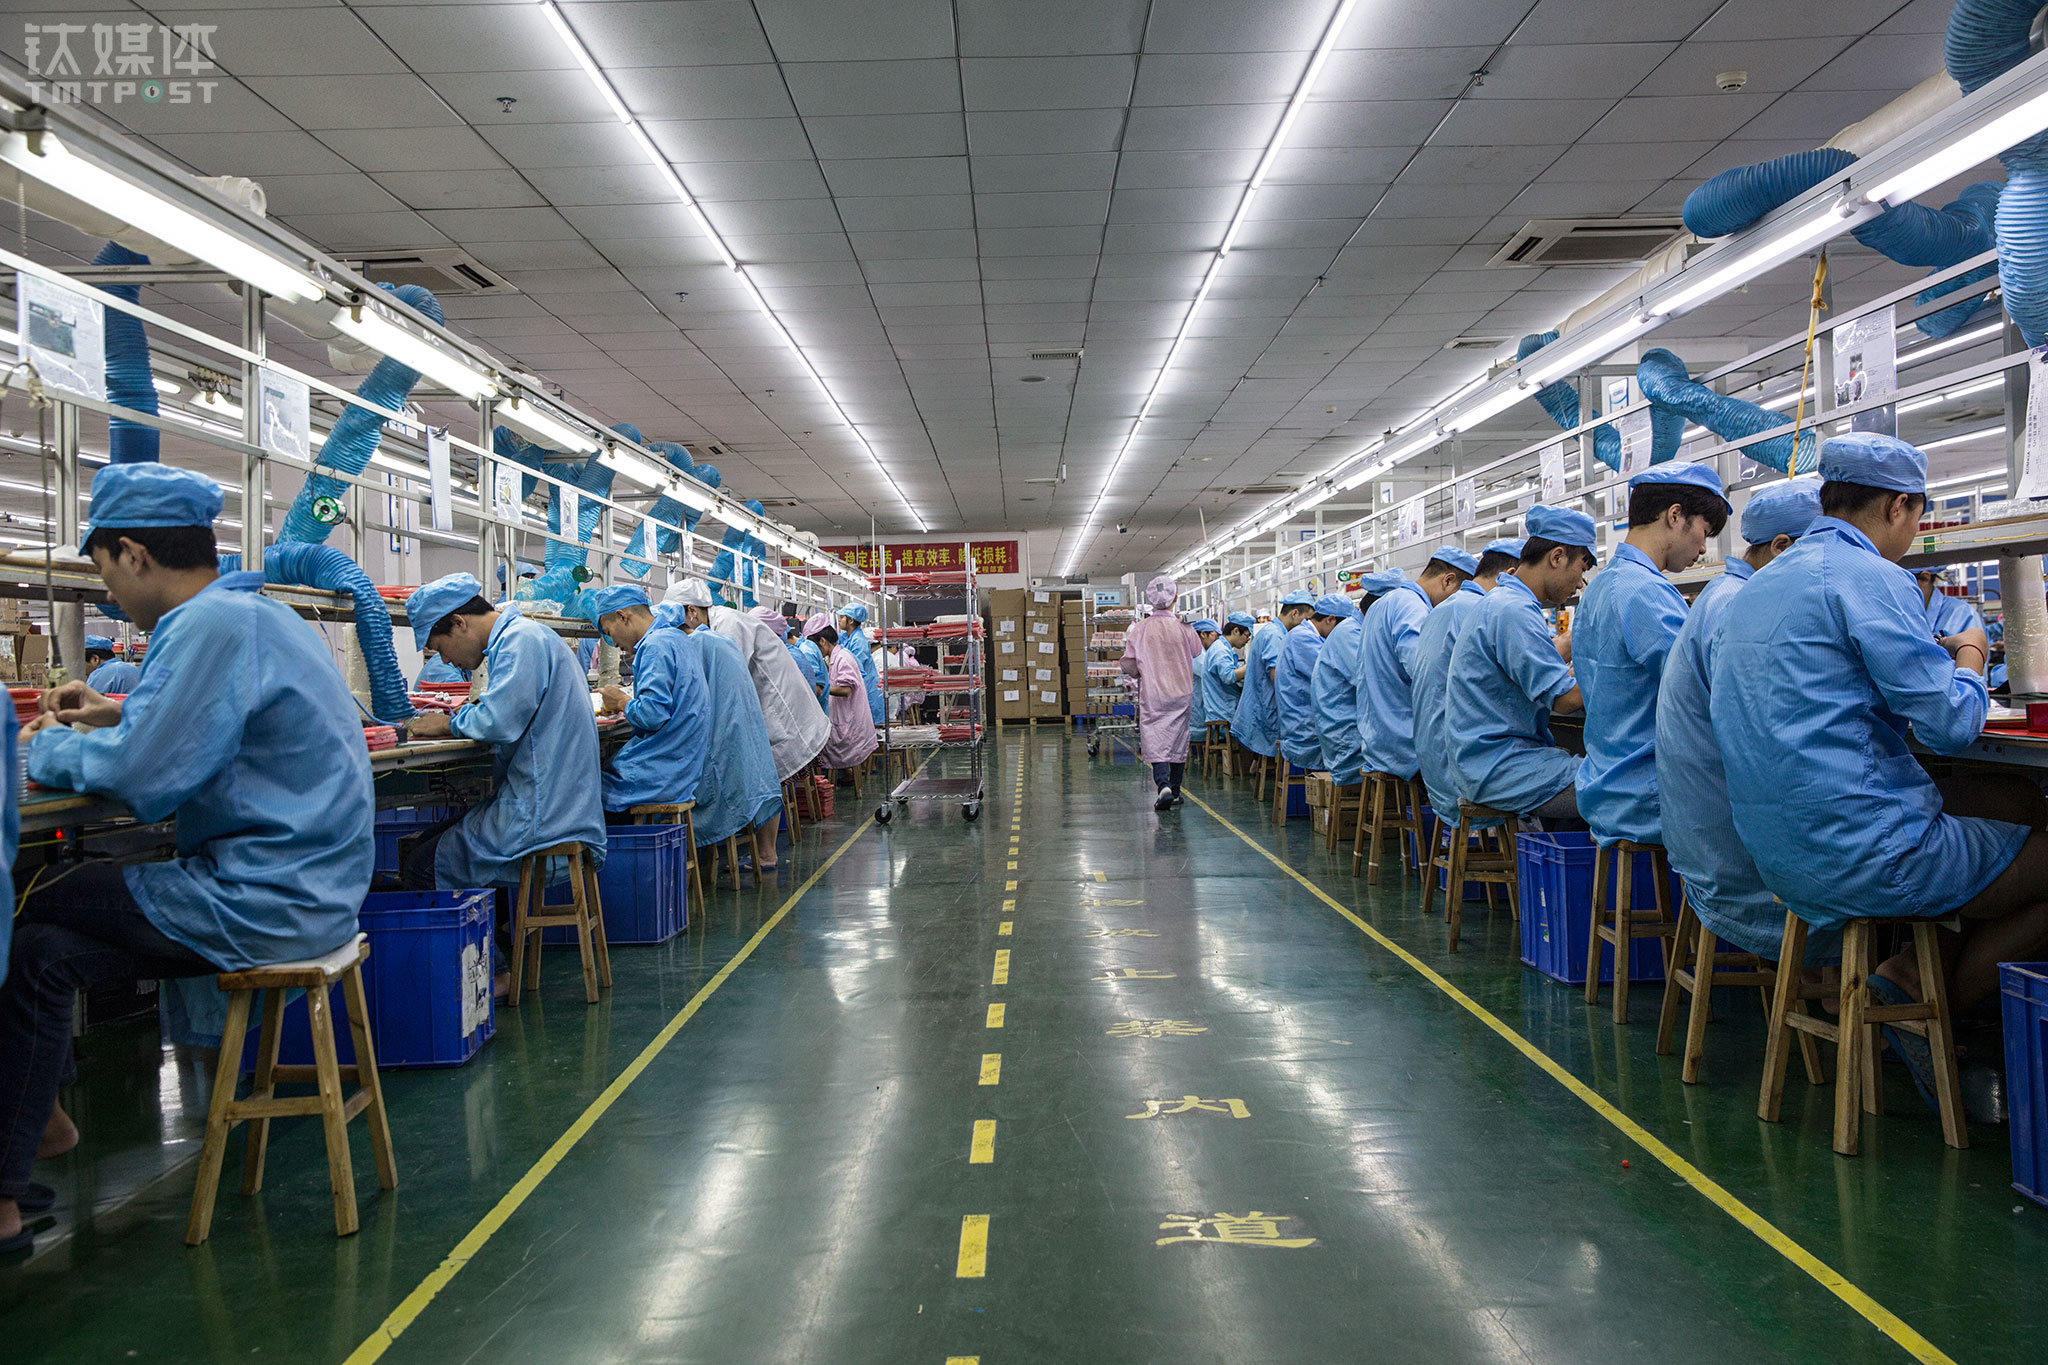 October 23rd, 2017, Zhongyuntai Science and Technology Industrial Park, Shenzhen. Workers were busy at the assembly lines in the factory of KOMKIA. This OEM plant with more than 200 employees has been around for 13 years, focusing on manufacturing smart hardware and other electronic products.